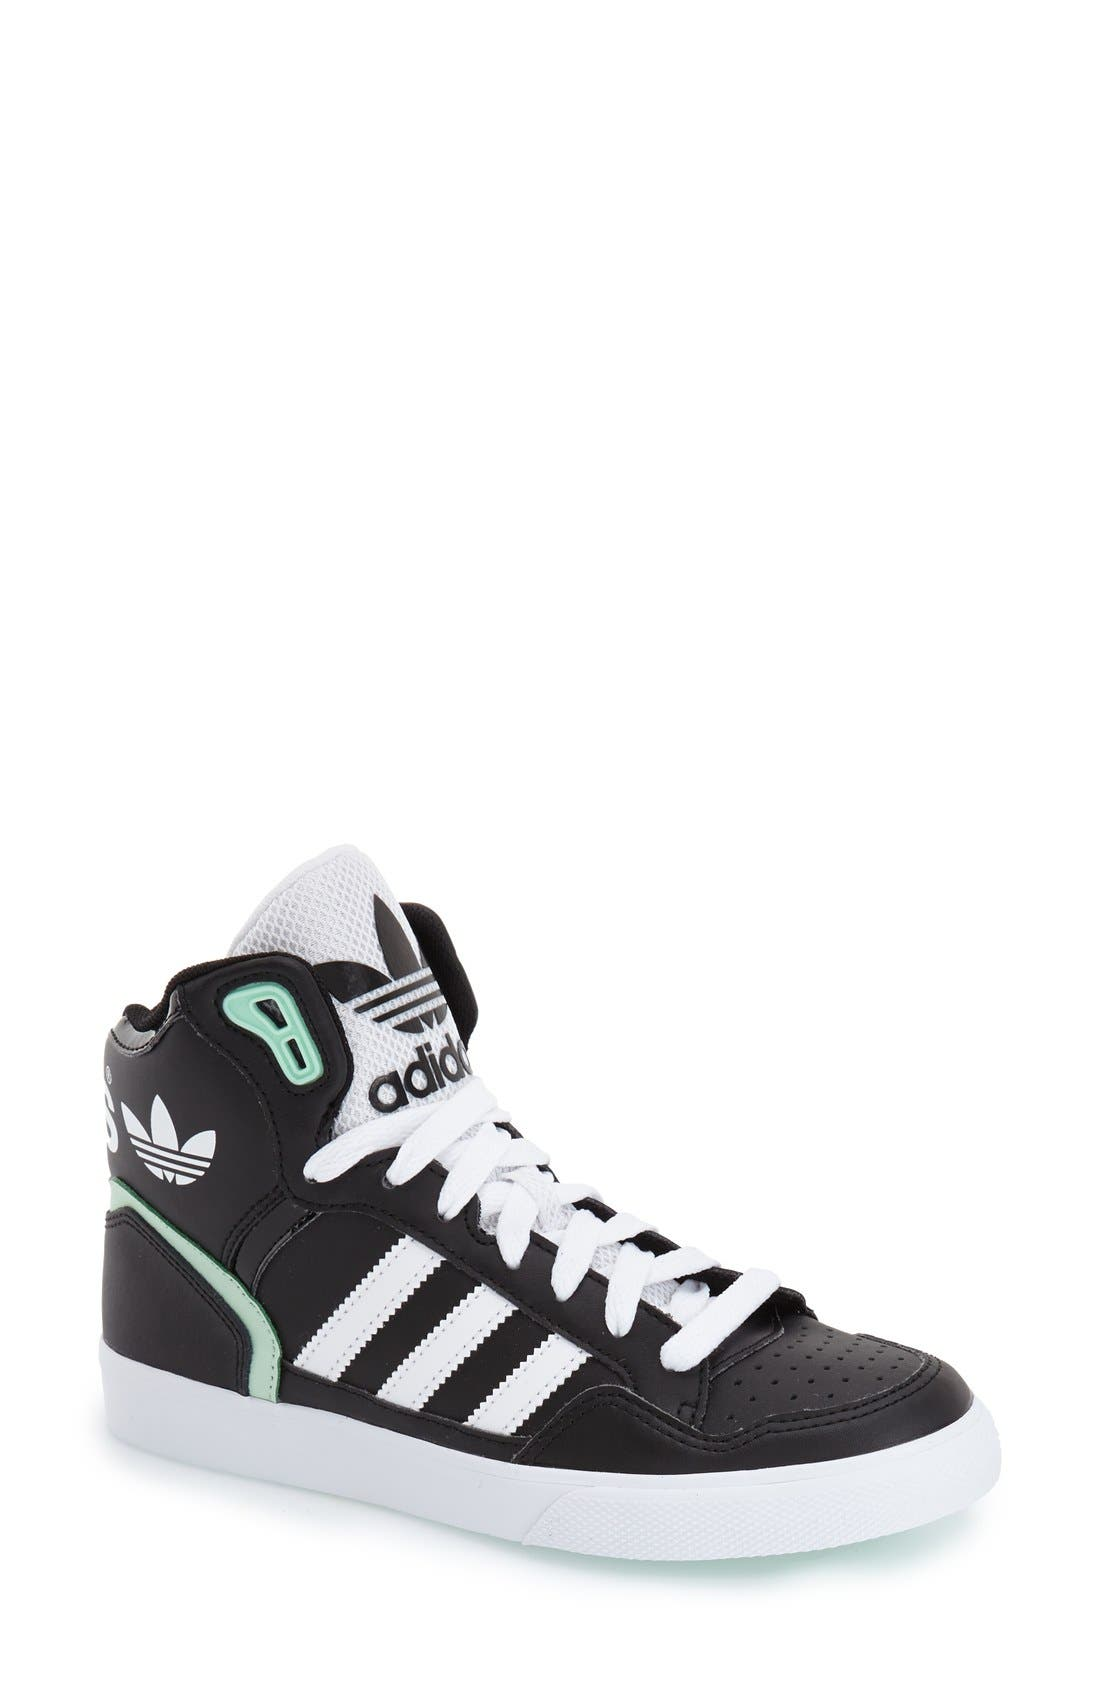 Alternate Image 1 Selected - adidas 'Extaball' High Top Sneaker (Women)